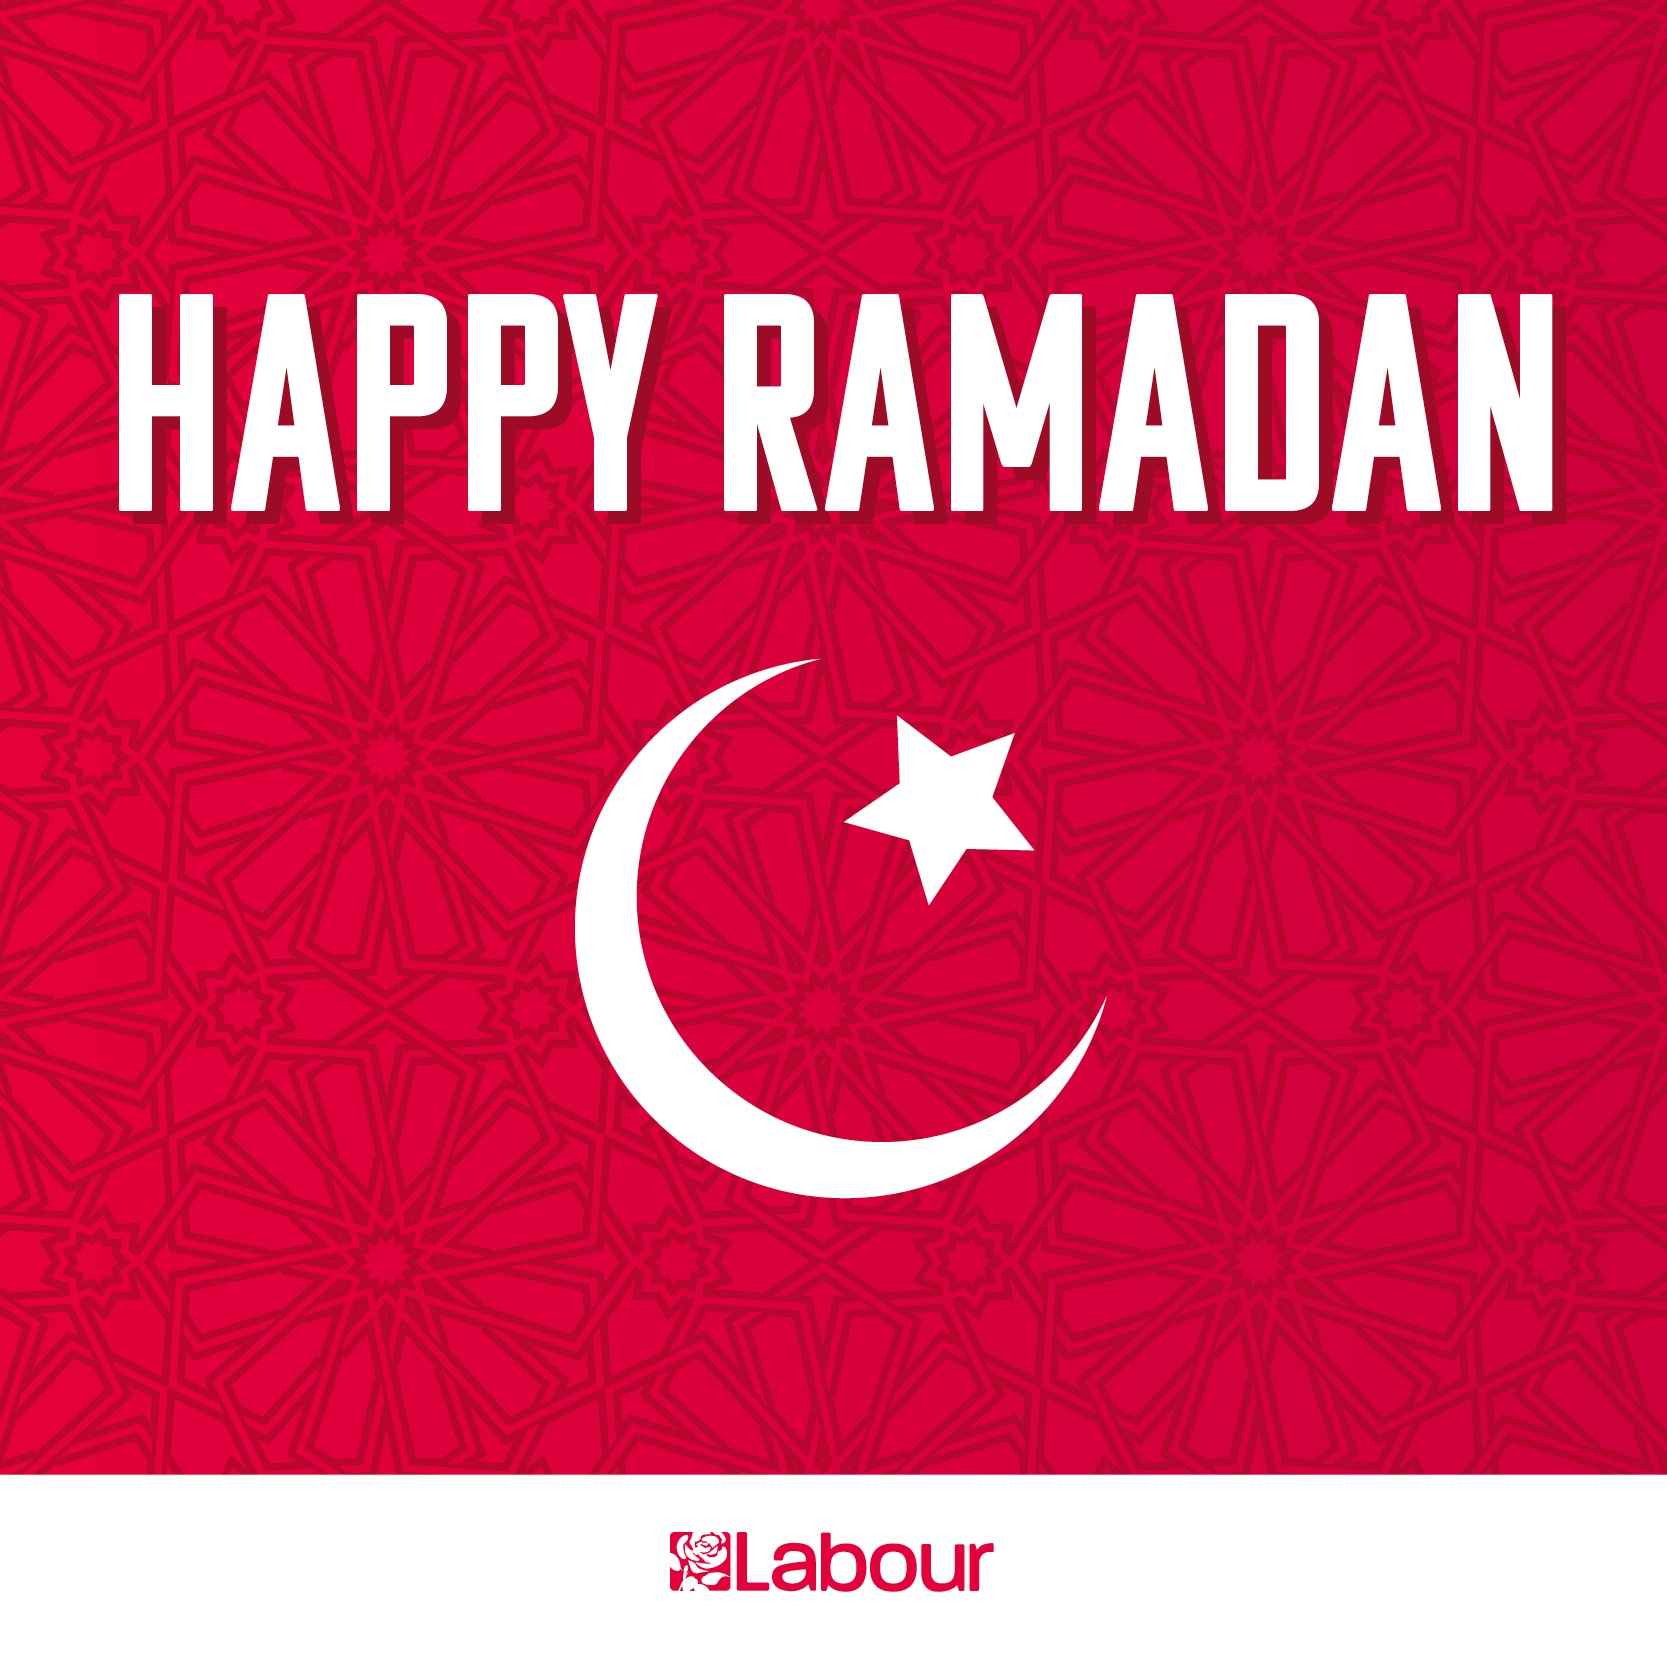 We'd like to wish all Muslim people in our country and across the world Ramadan Mubarak. https://t.co/sU5uA0IGnb